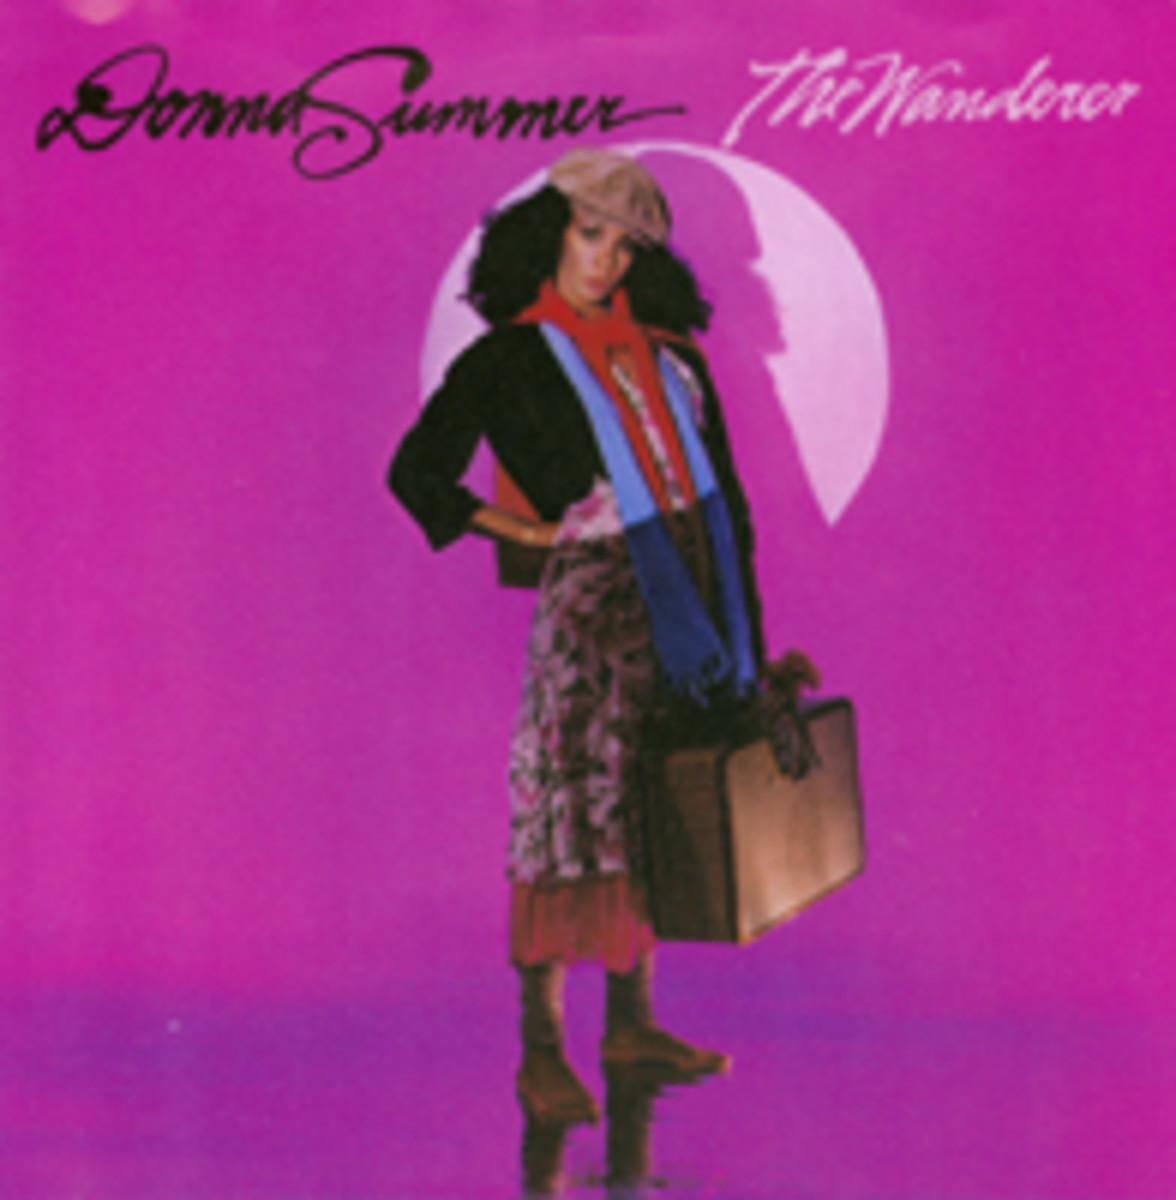 Donna Summer picture sleeve